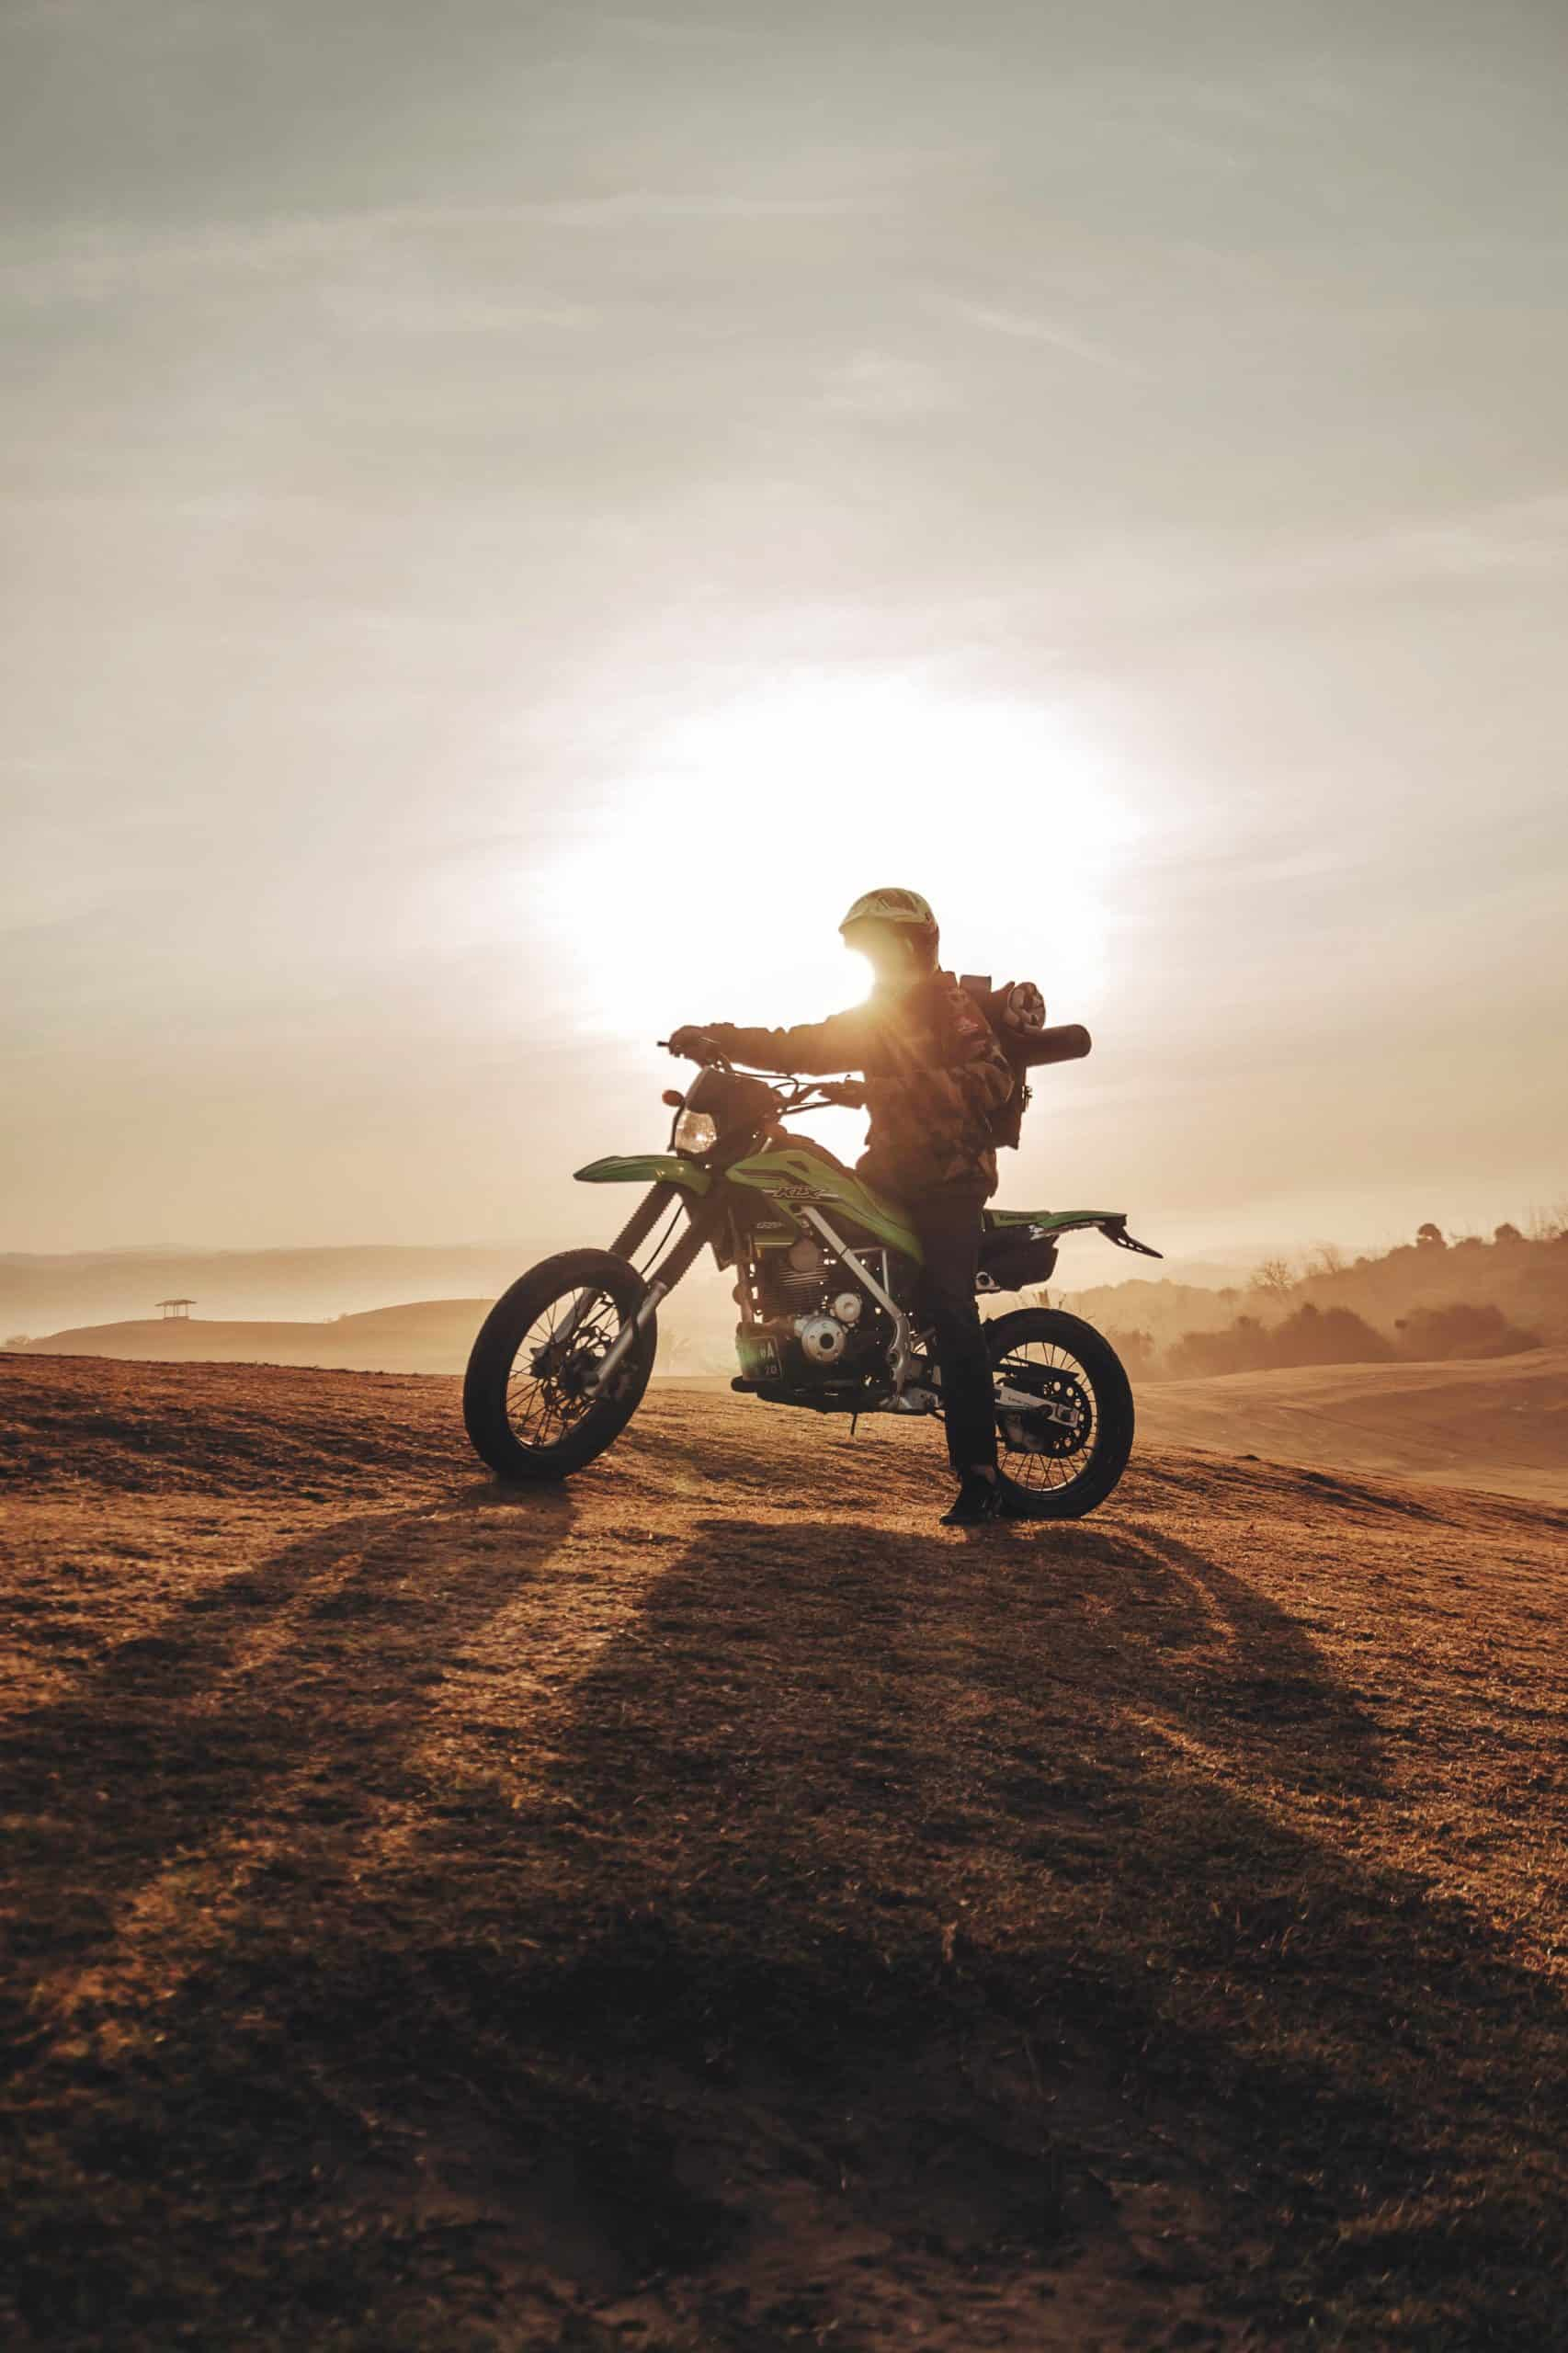 What Should You Know About Motorcycle Safety